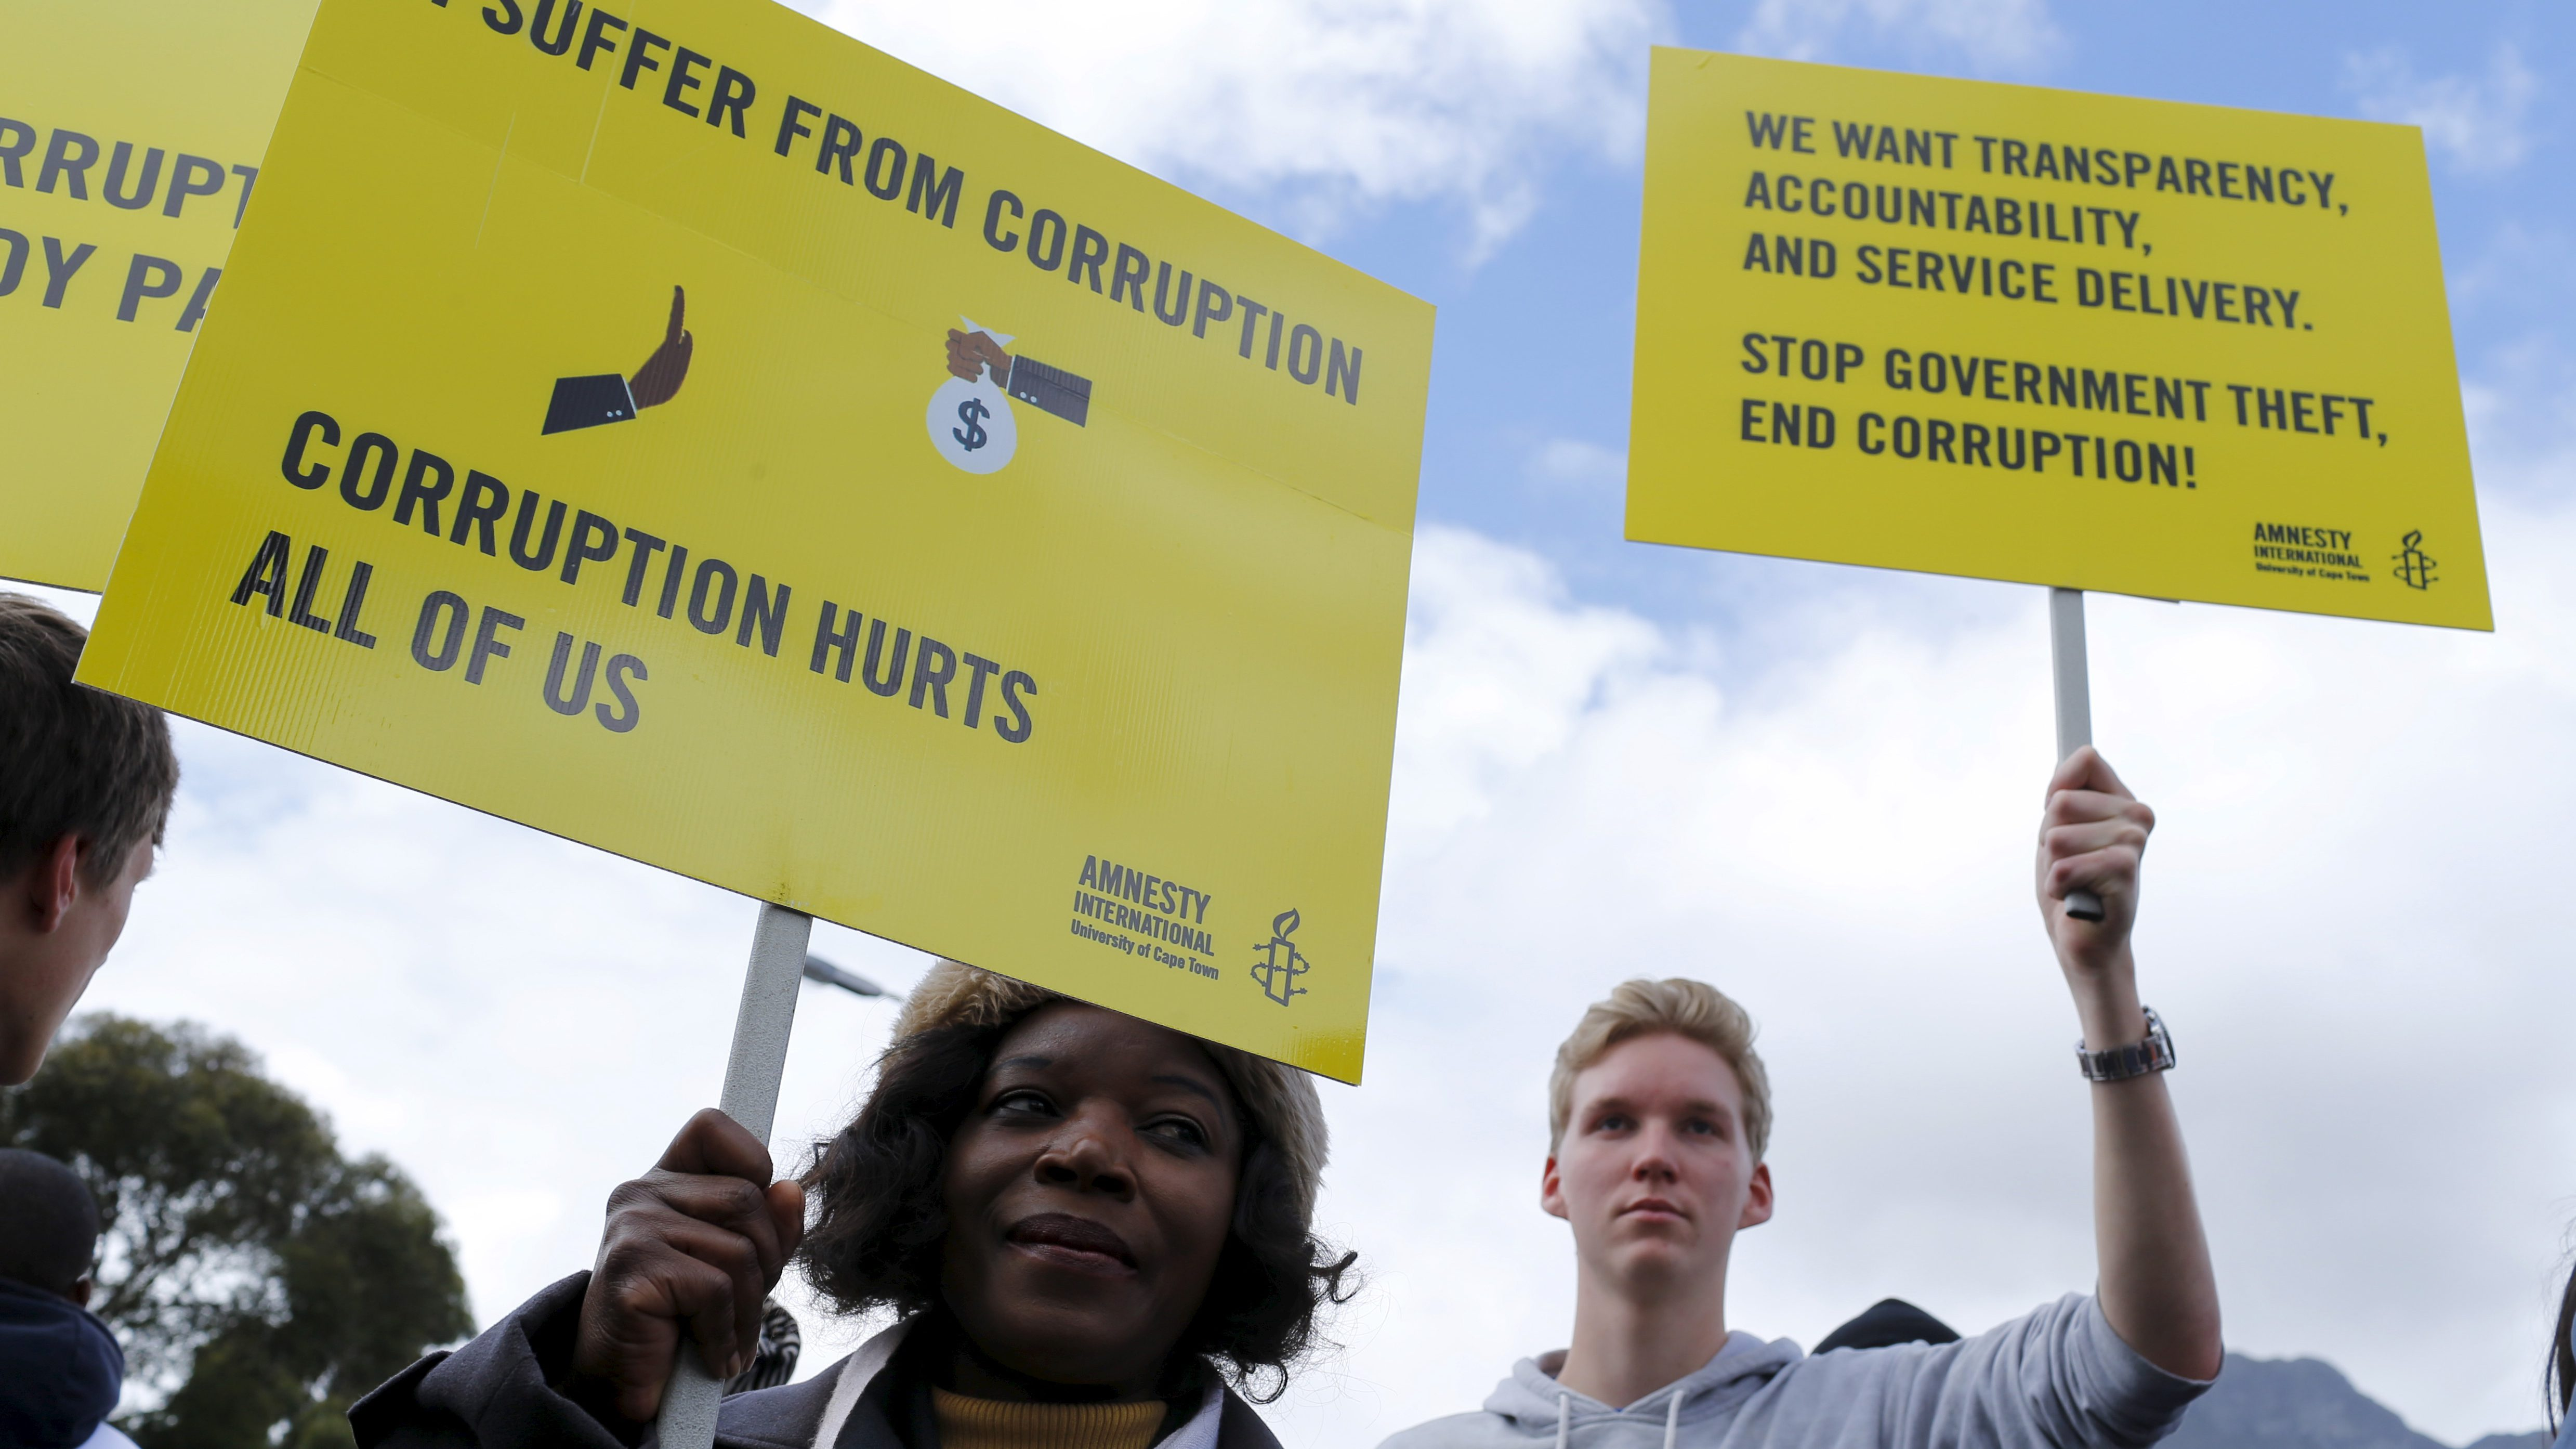 Demonstrators carry placards as they march to protest against corruption in Cape Town